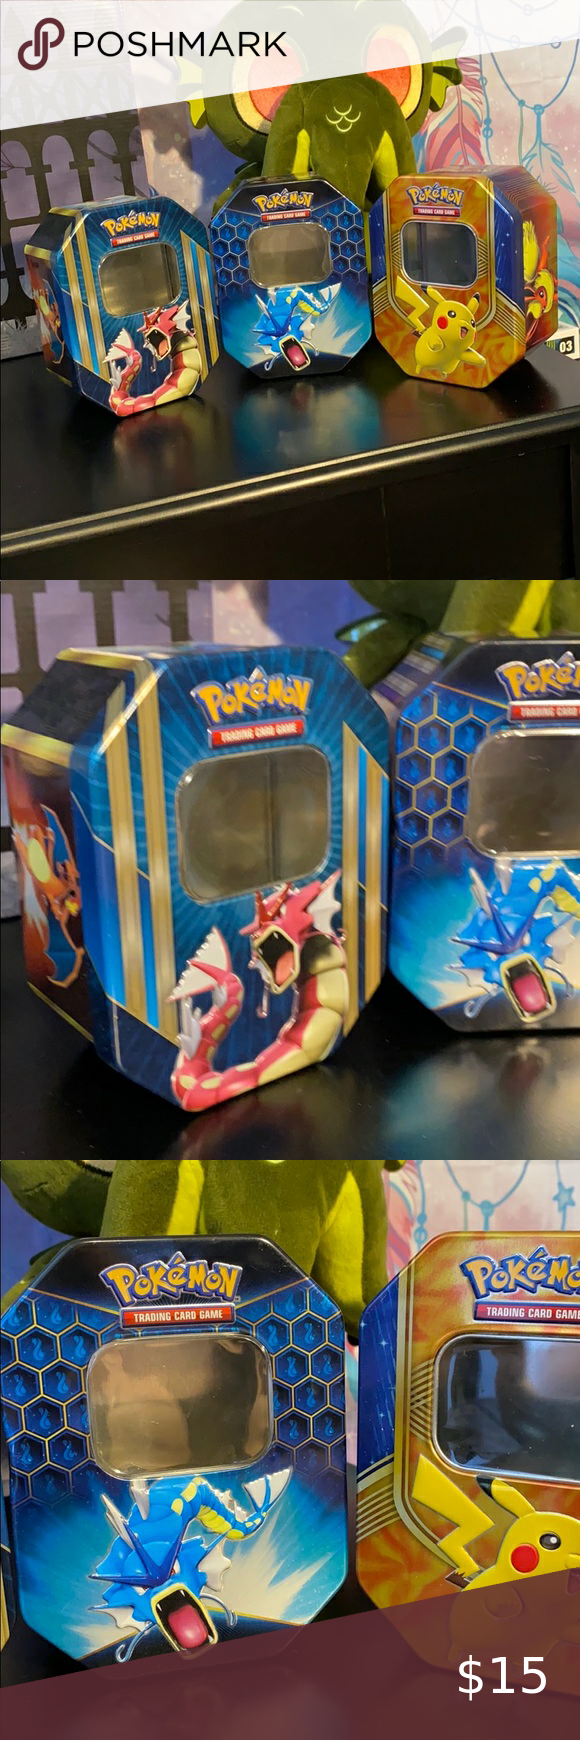 5/$25 3pc Pokémon Tins 5/$25 3pc Pokémon Tins Thre